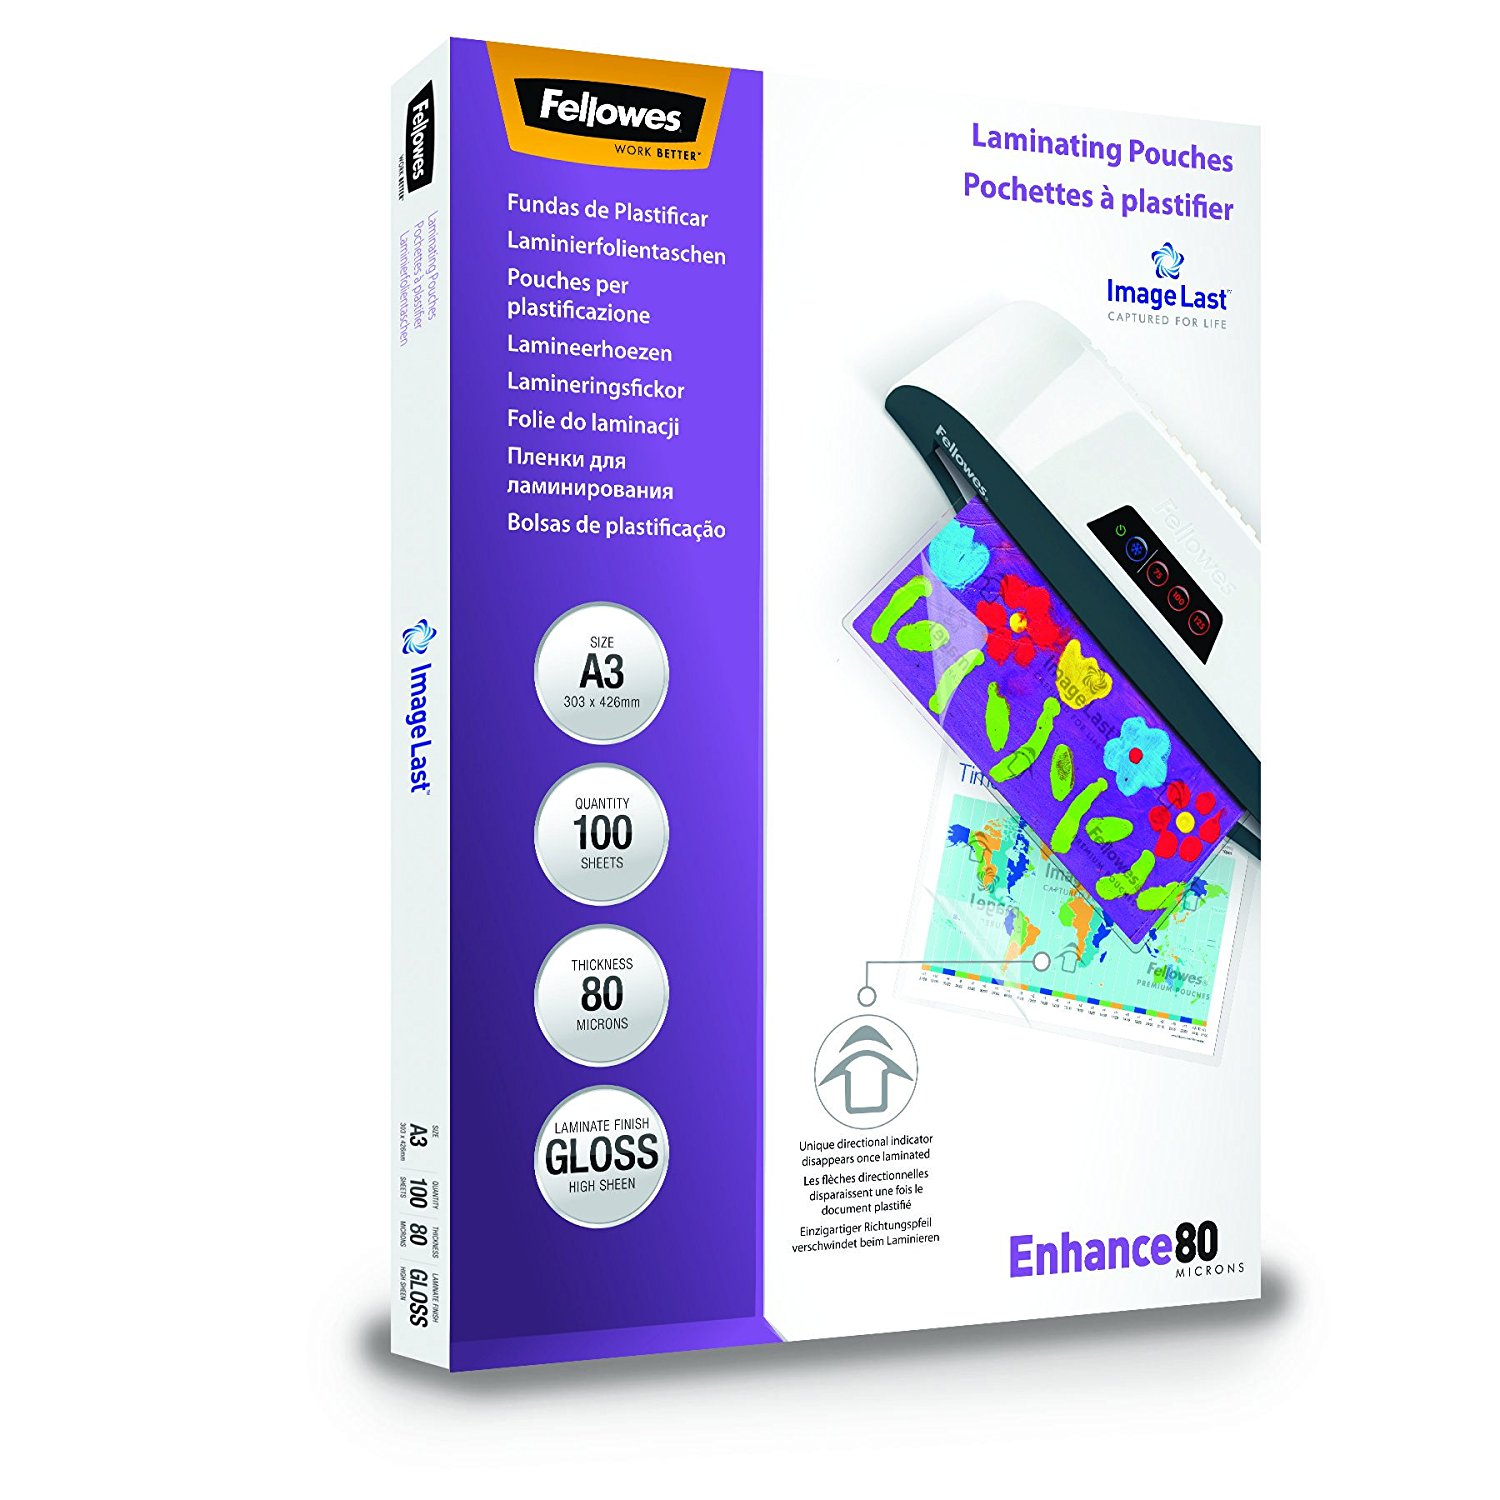 Laminating Film & Pockets Fellowes Laminating Pouch A3 2x80 micron 5306207 (PK100)